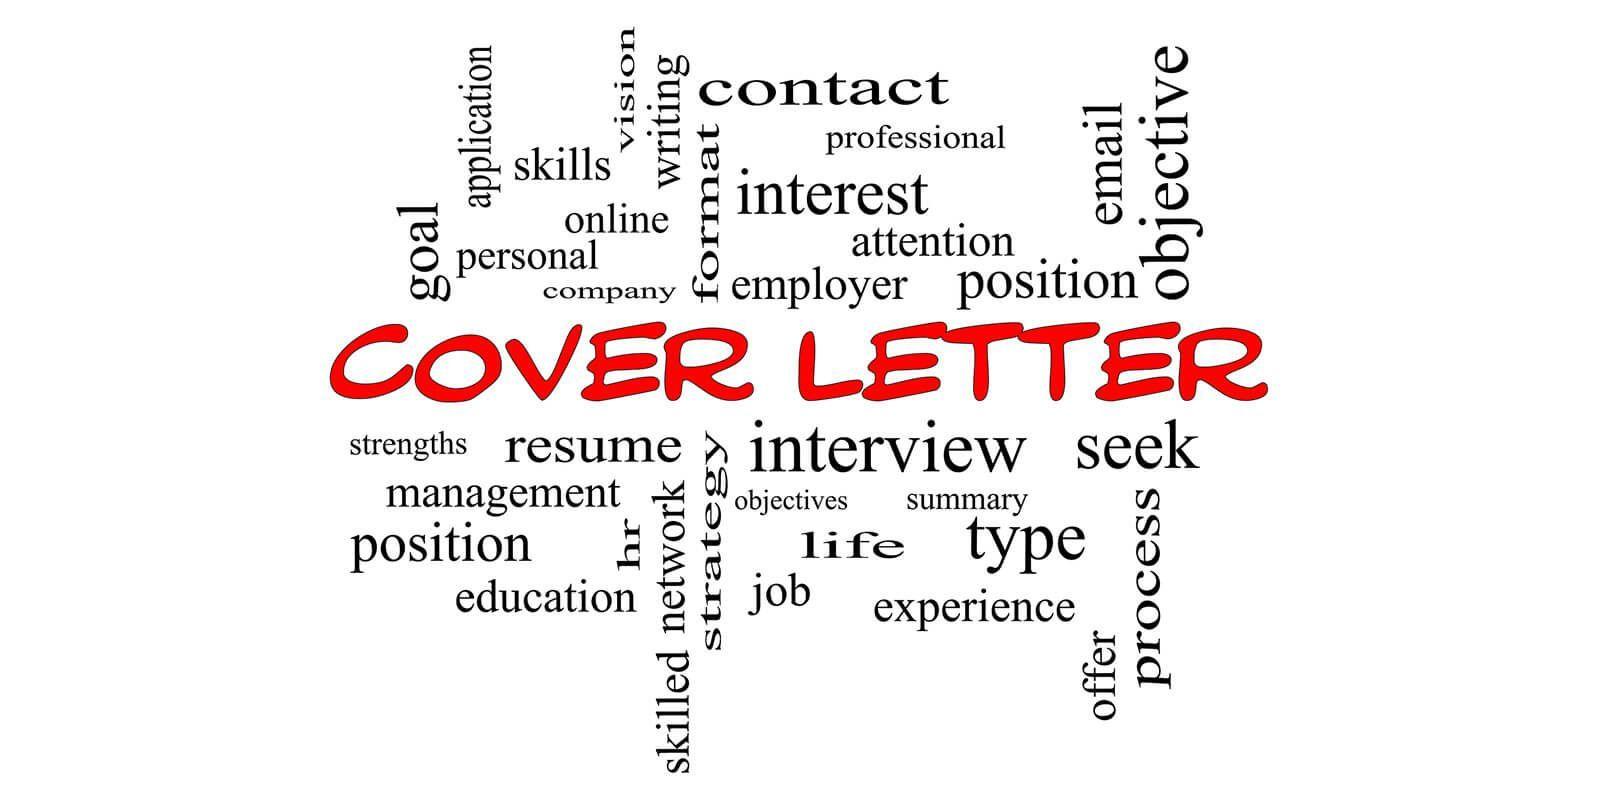 How to Figure Out What to Include in a Cover Letter